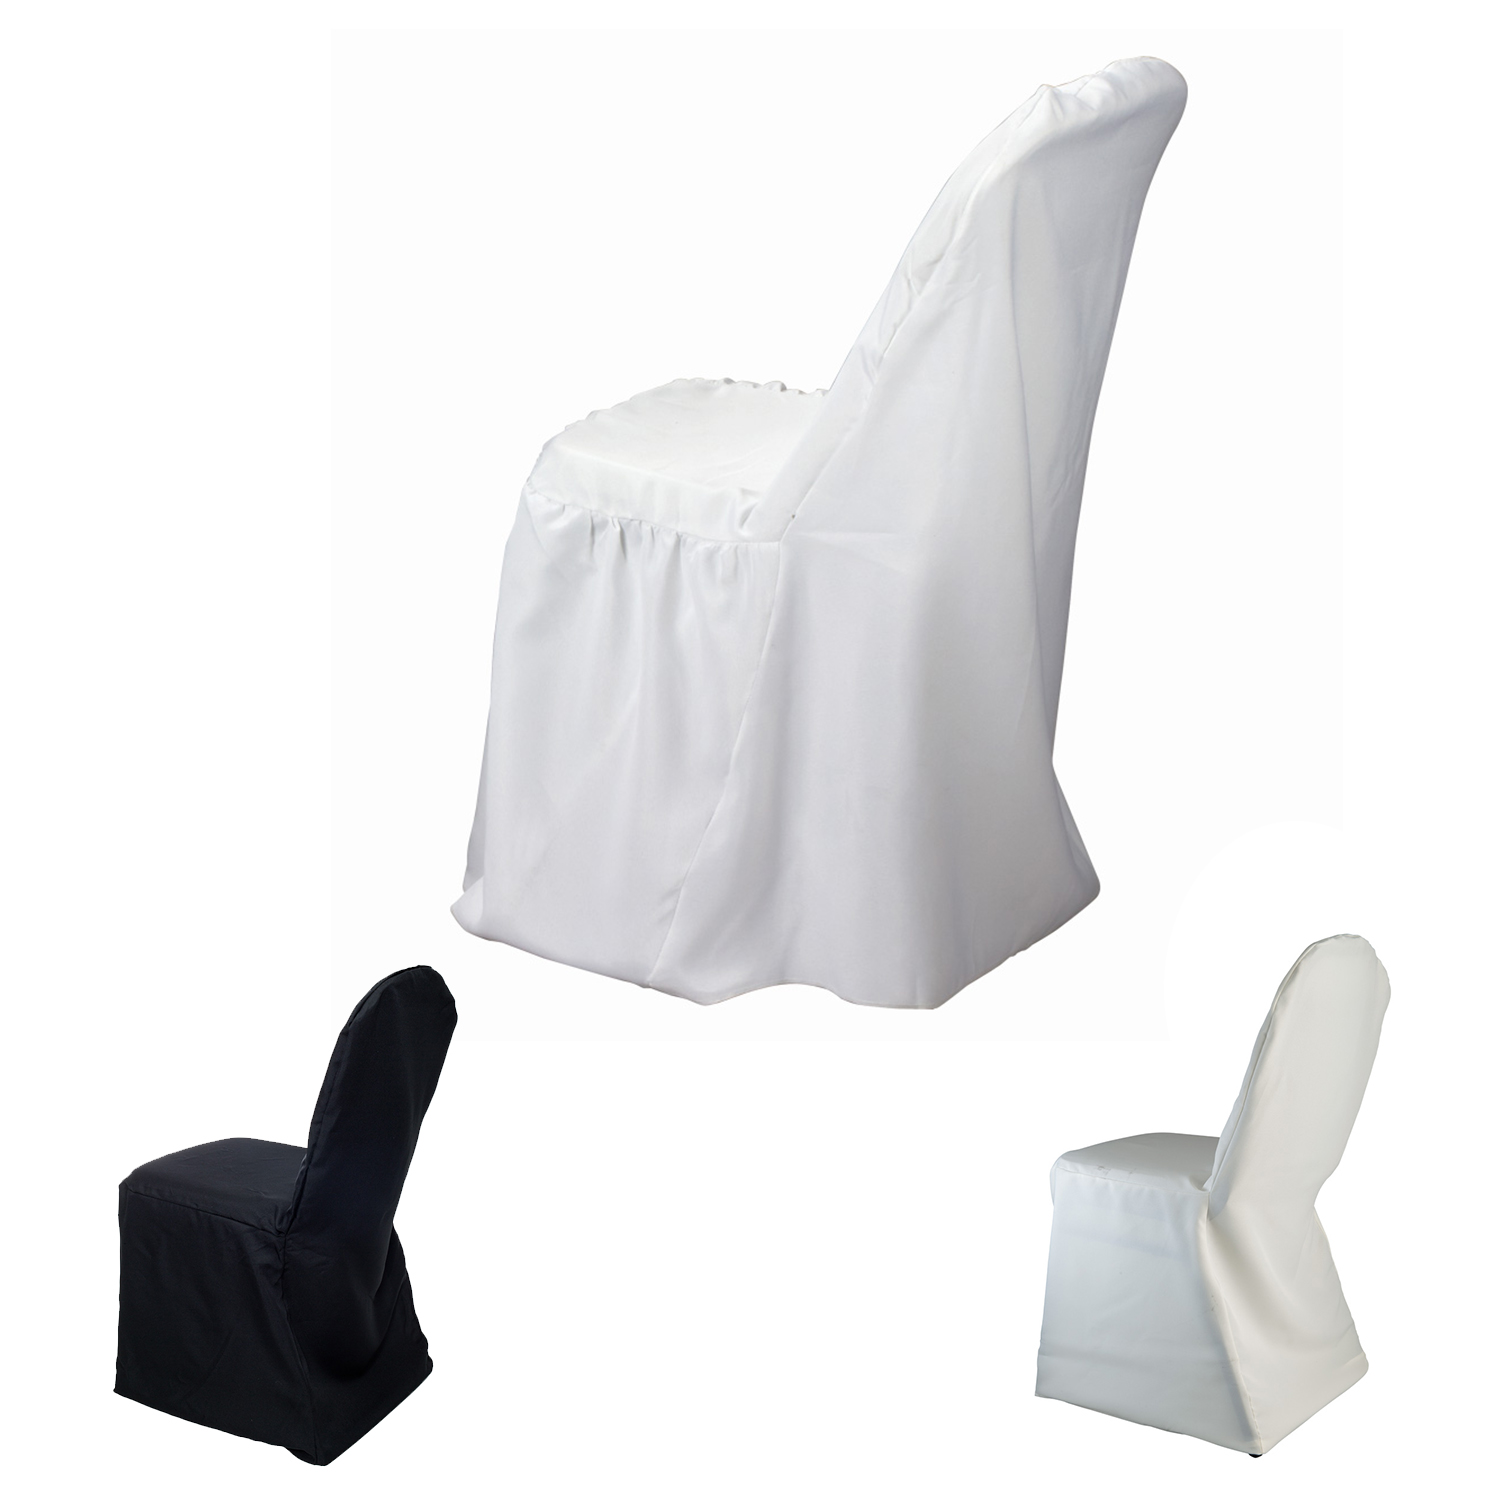 Groovy Bulk Polyester Banquet Chair Cover 12 Pieces Choose Color Camellatalisay Diy Chair Ideas Camellatalisaycom